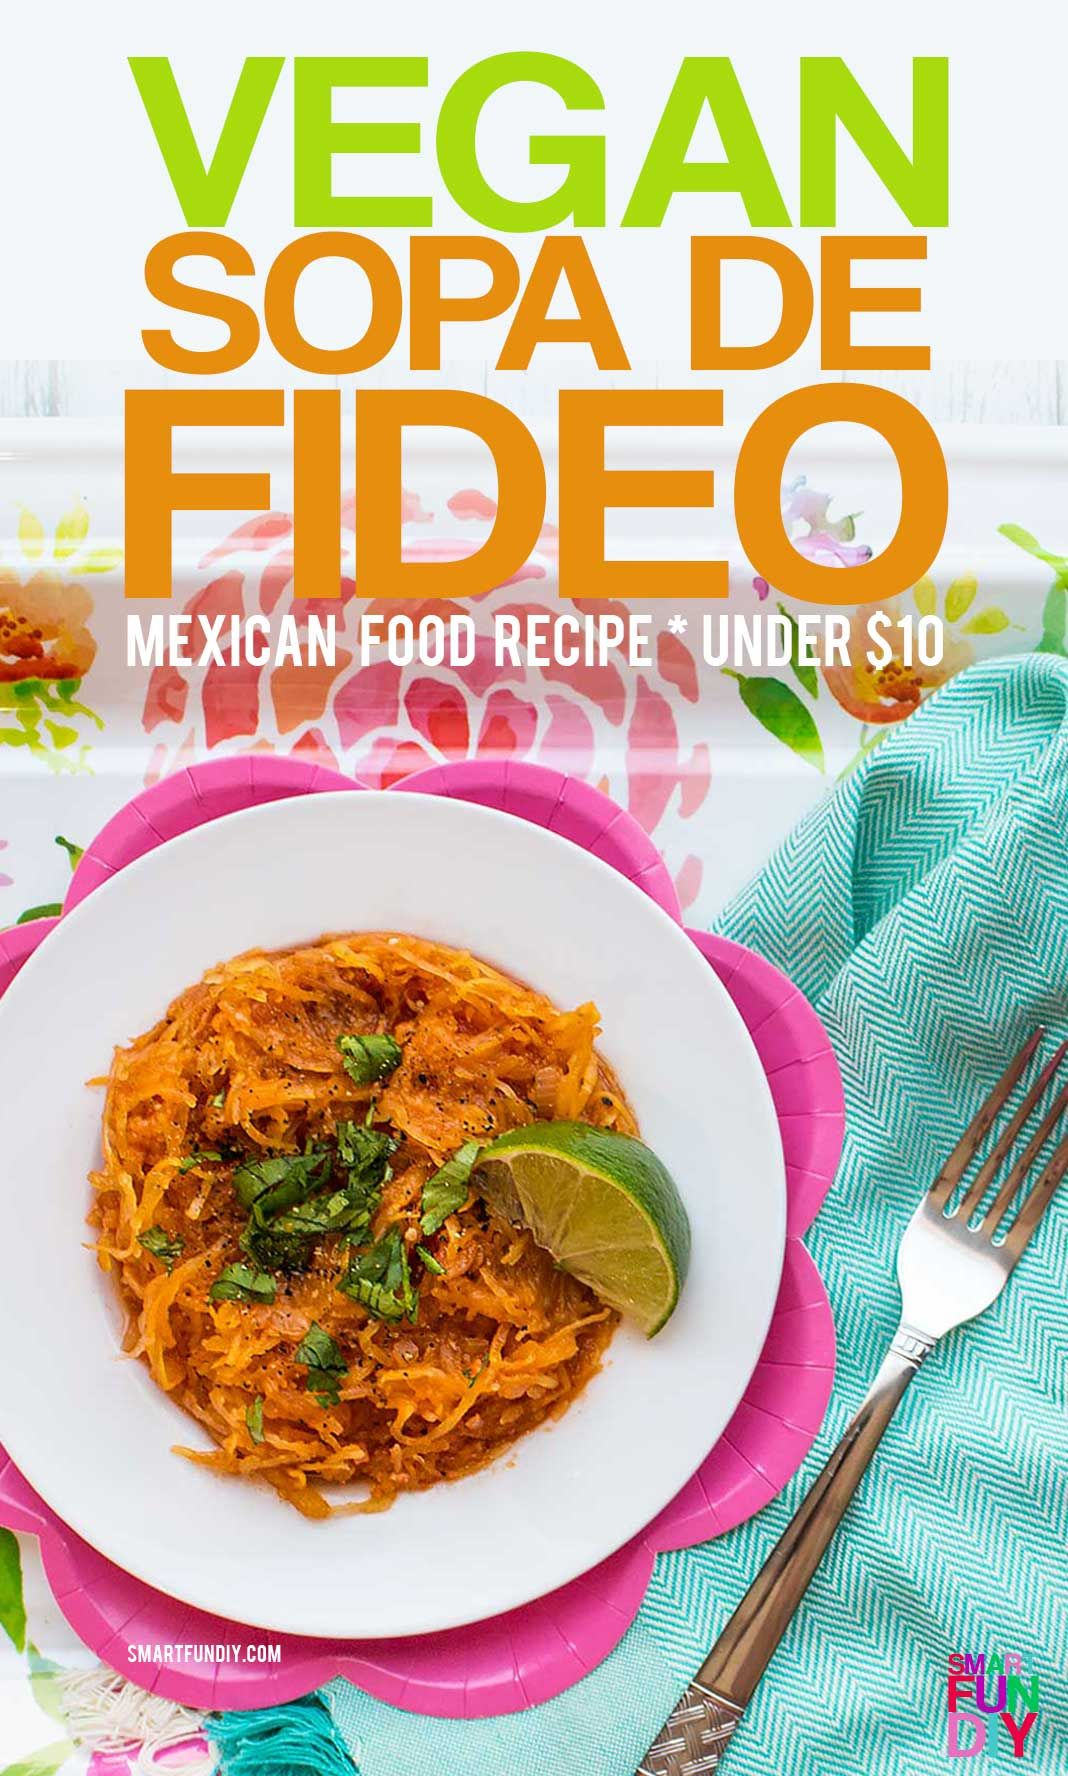 Vegan sopa de fideo recipe with spaghetti squash a mothers day ad vegan sopa de fideo recipe healthier version of the traditional mexican food forumfinder Choice Image